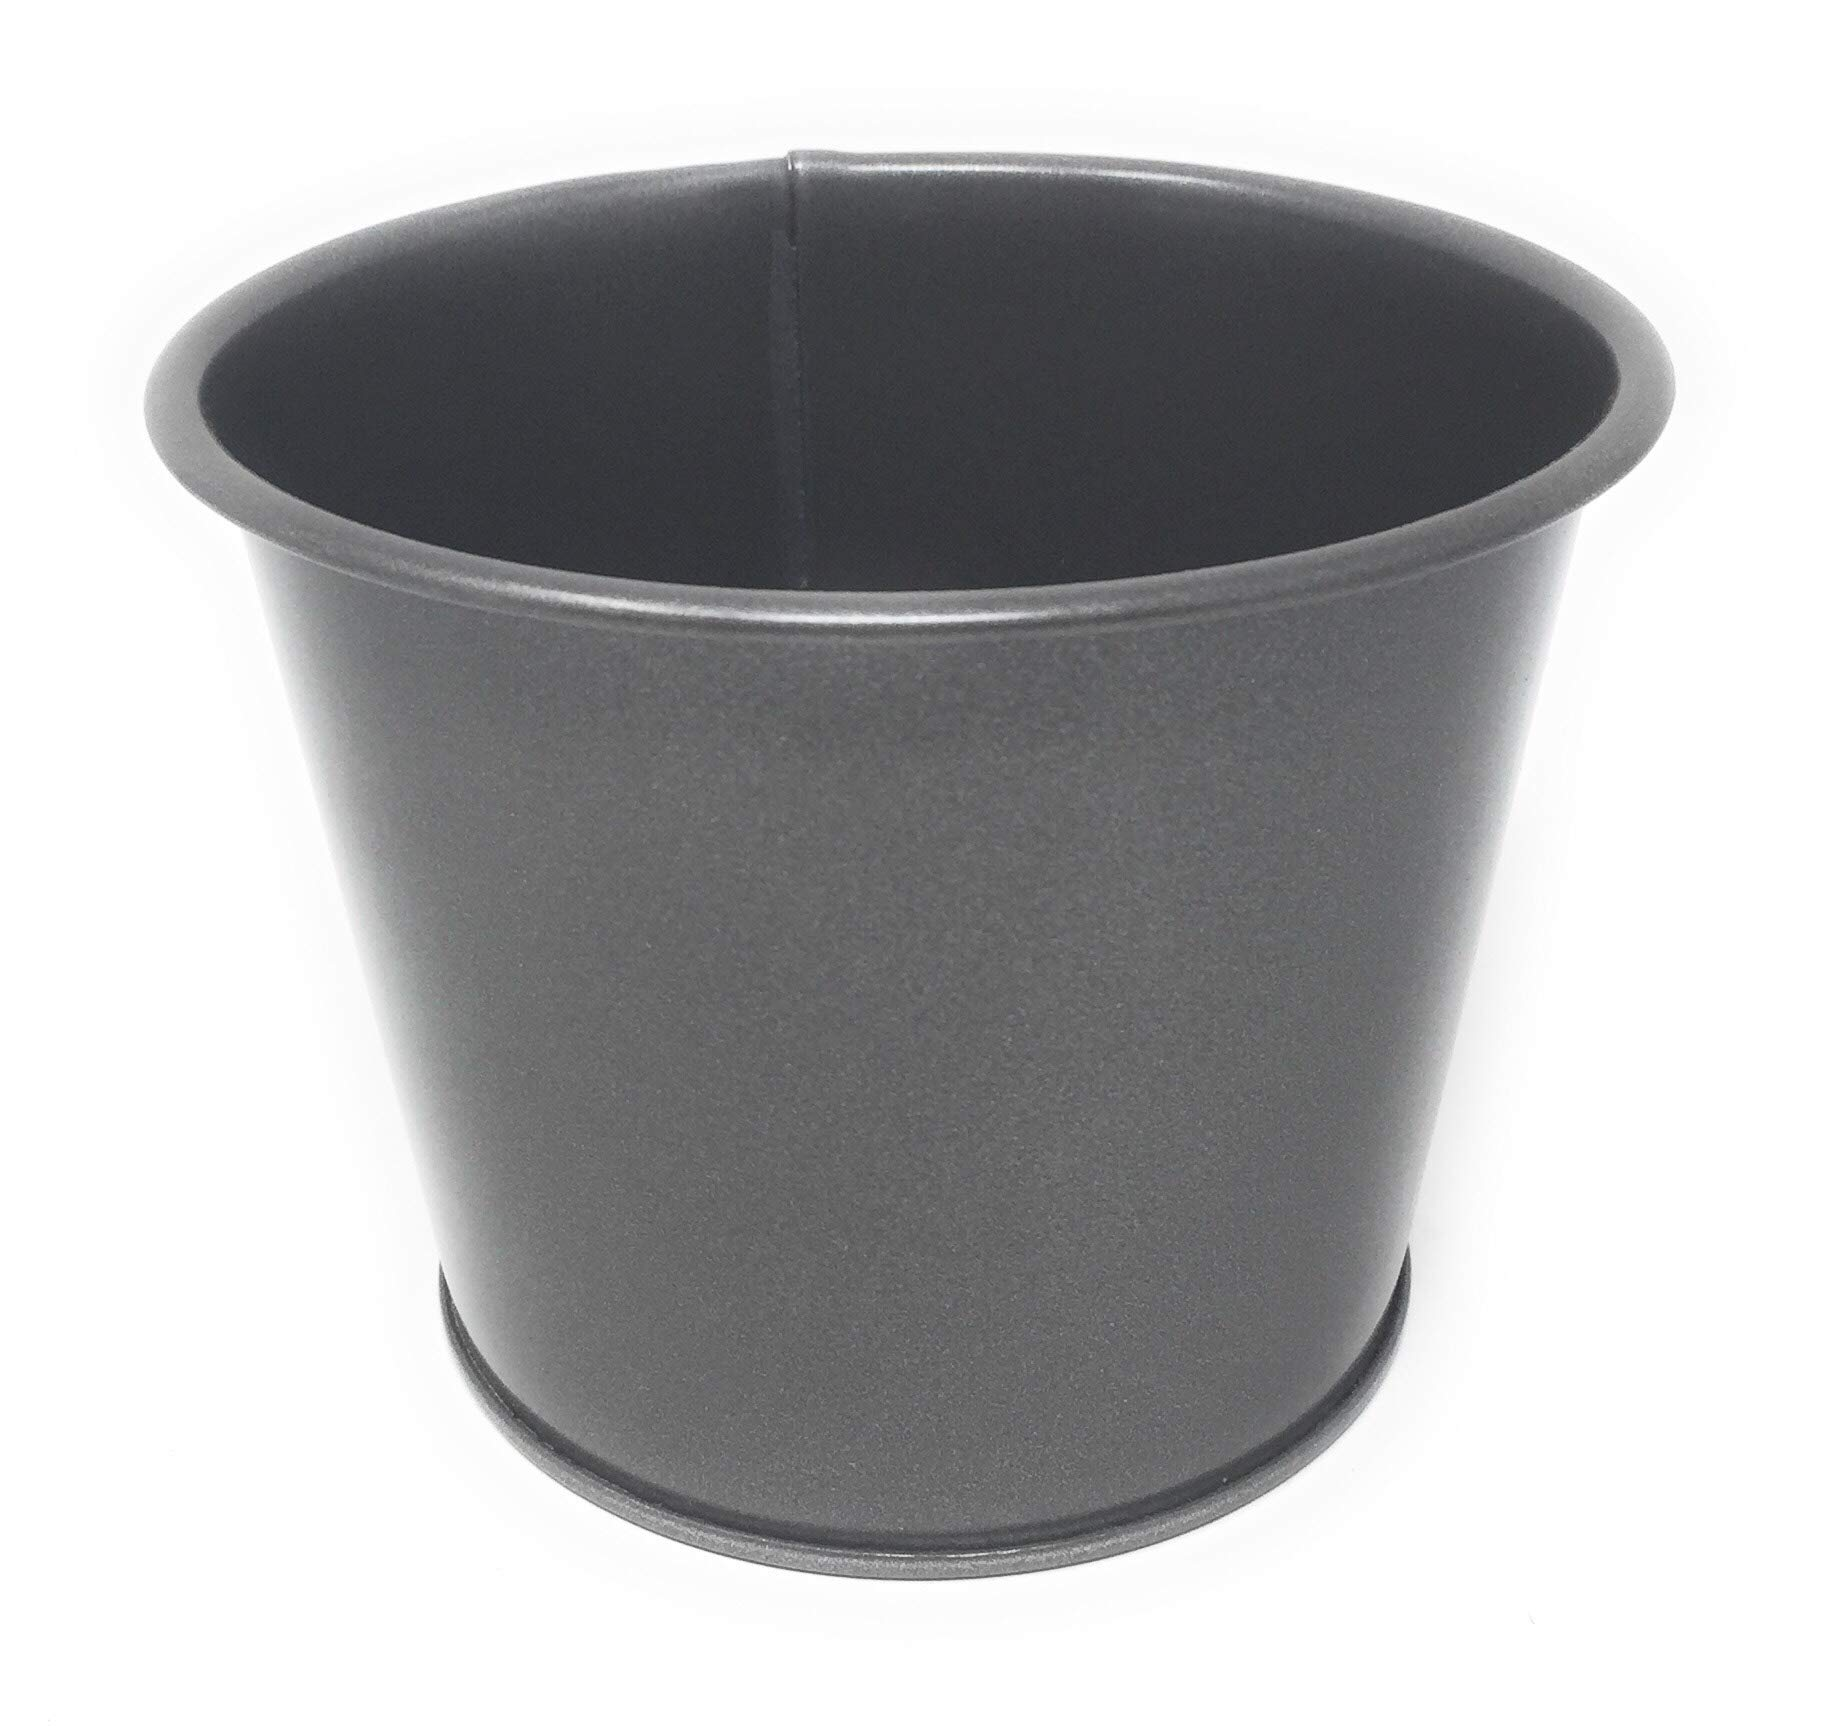 Serene Spaces Living Shiny Zinc Buckets, Ideal as Metal Vases, Set of 2, Each Measures 3.5'' Tall x 4.75'' Diameter